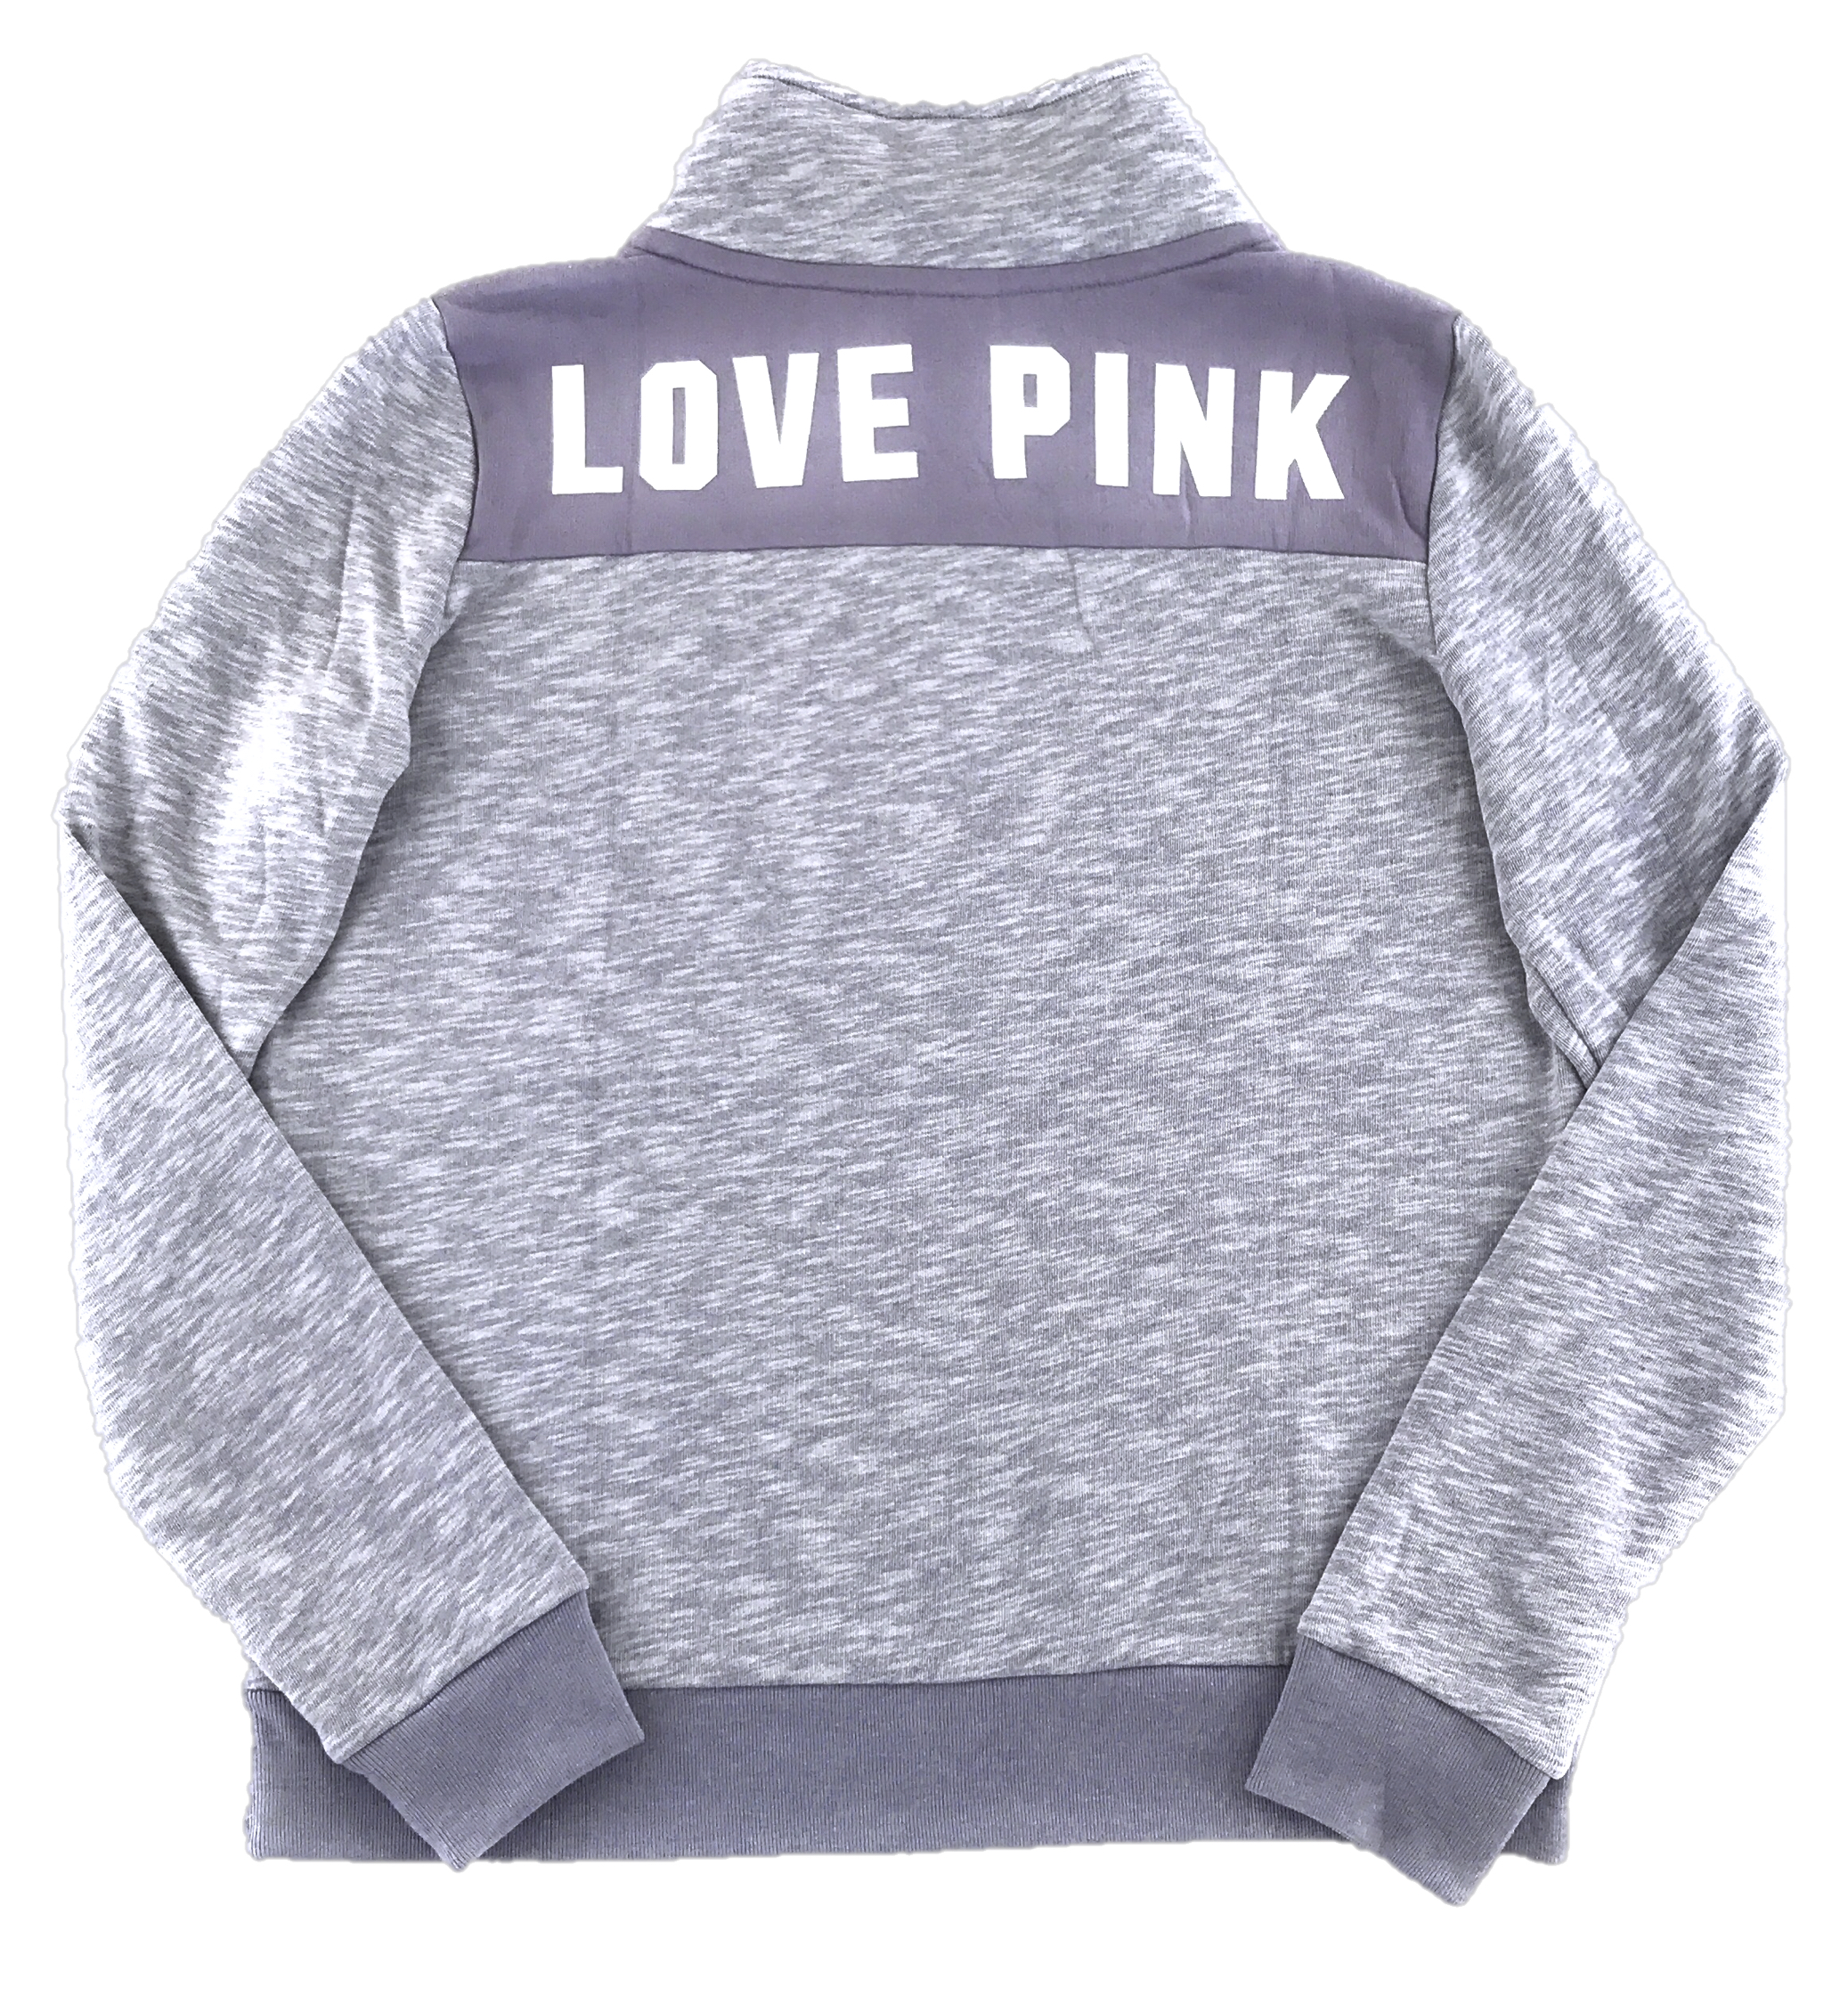 f3a0bbab Victoria's Secret Pink Quarter Zip Sweatshirt Hoodie Patch Marled ...